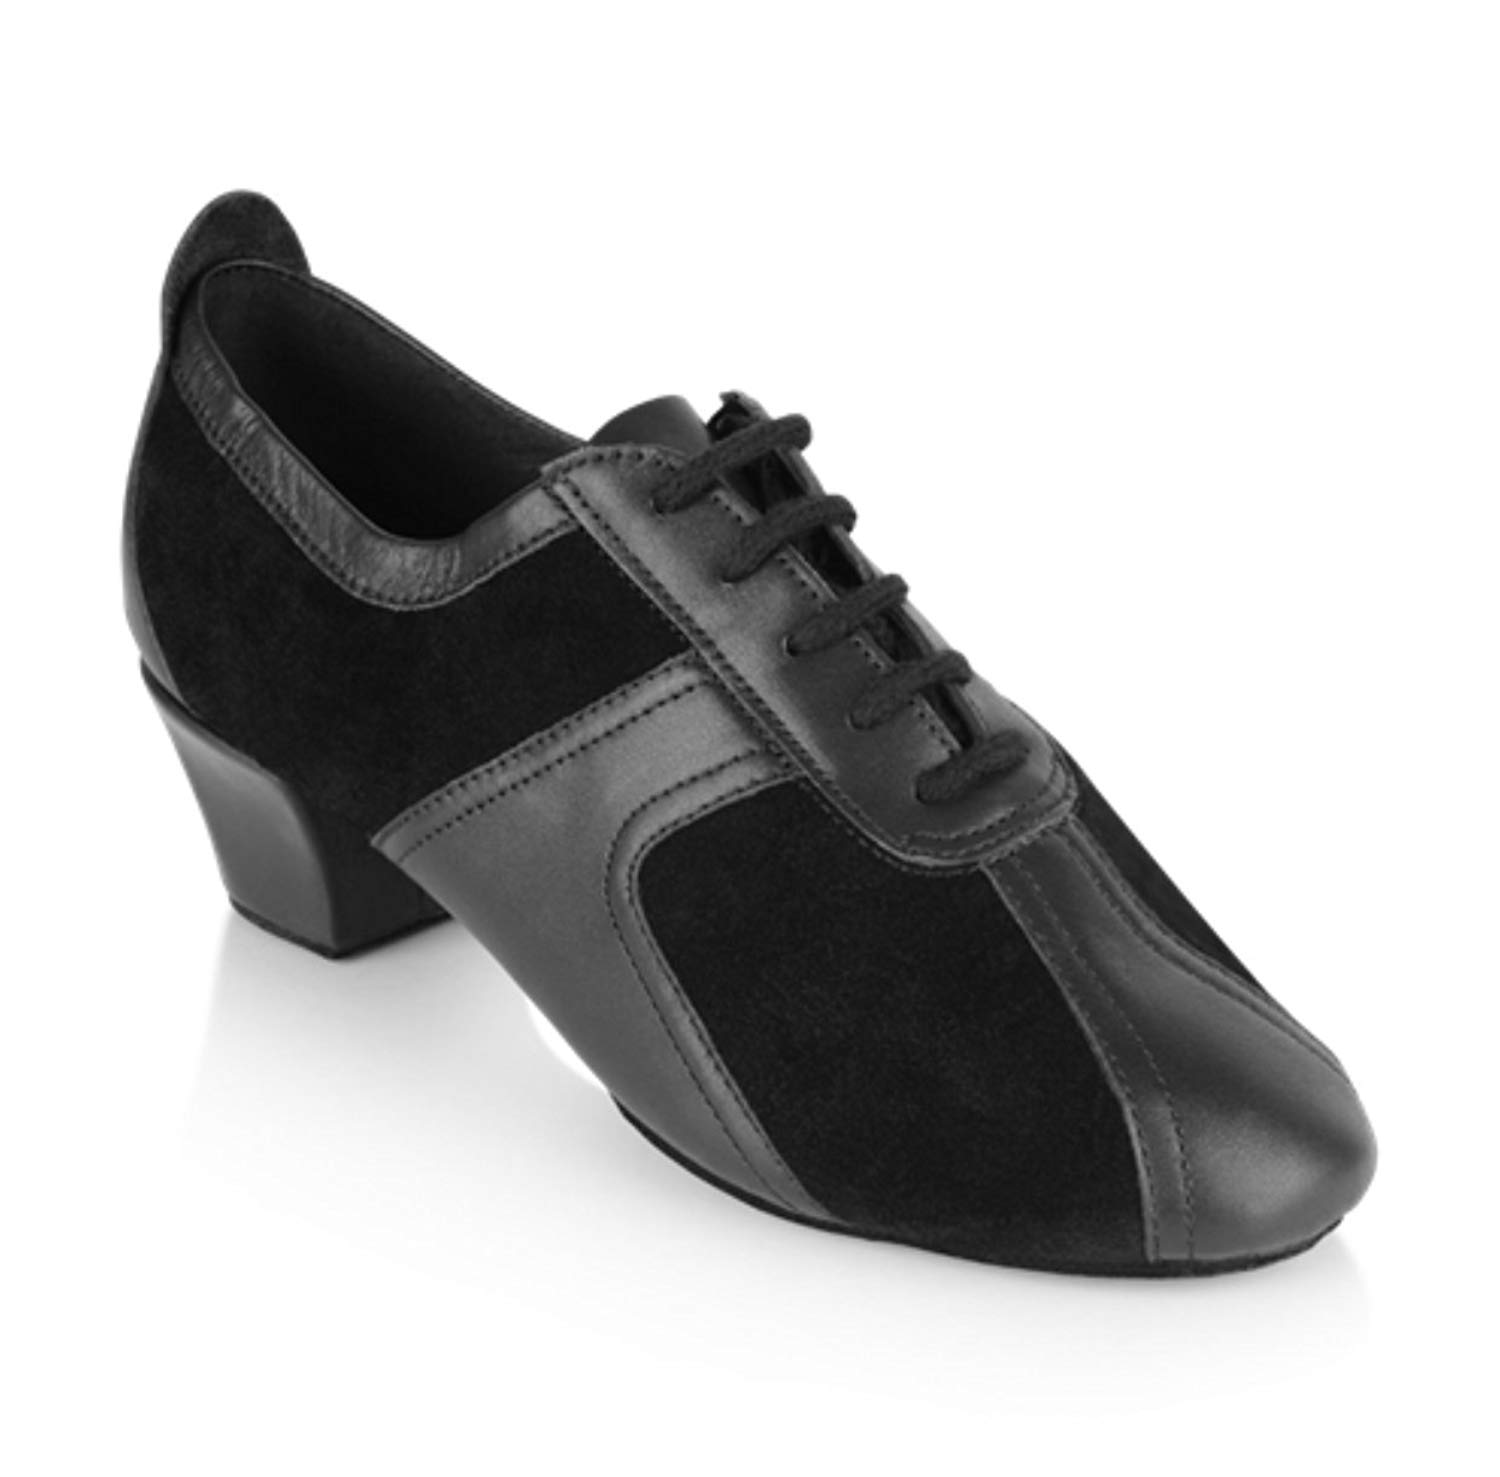 74a2327e40f6 Get Quotations · Ray Rose 410 Breeze Unisex Teaching Dance Shoes (UK Size  9.5)